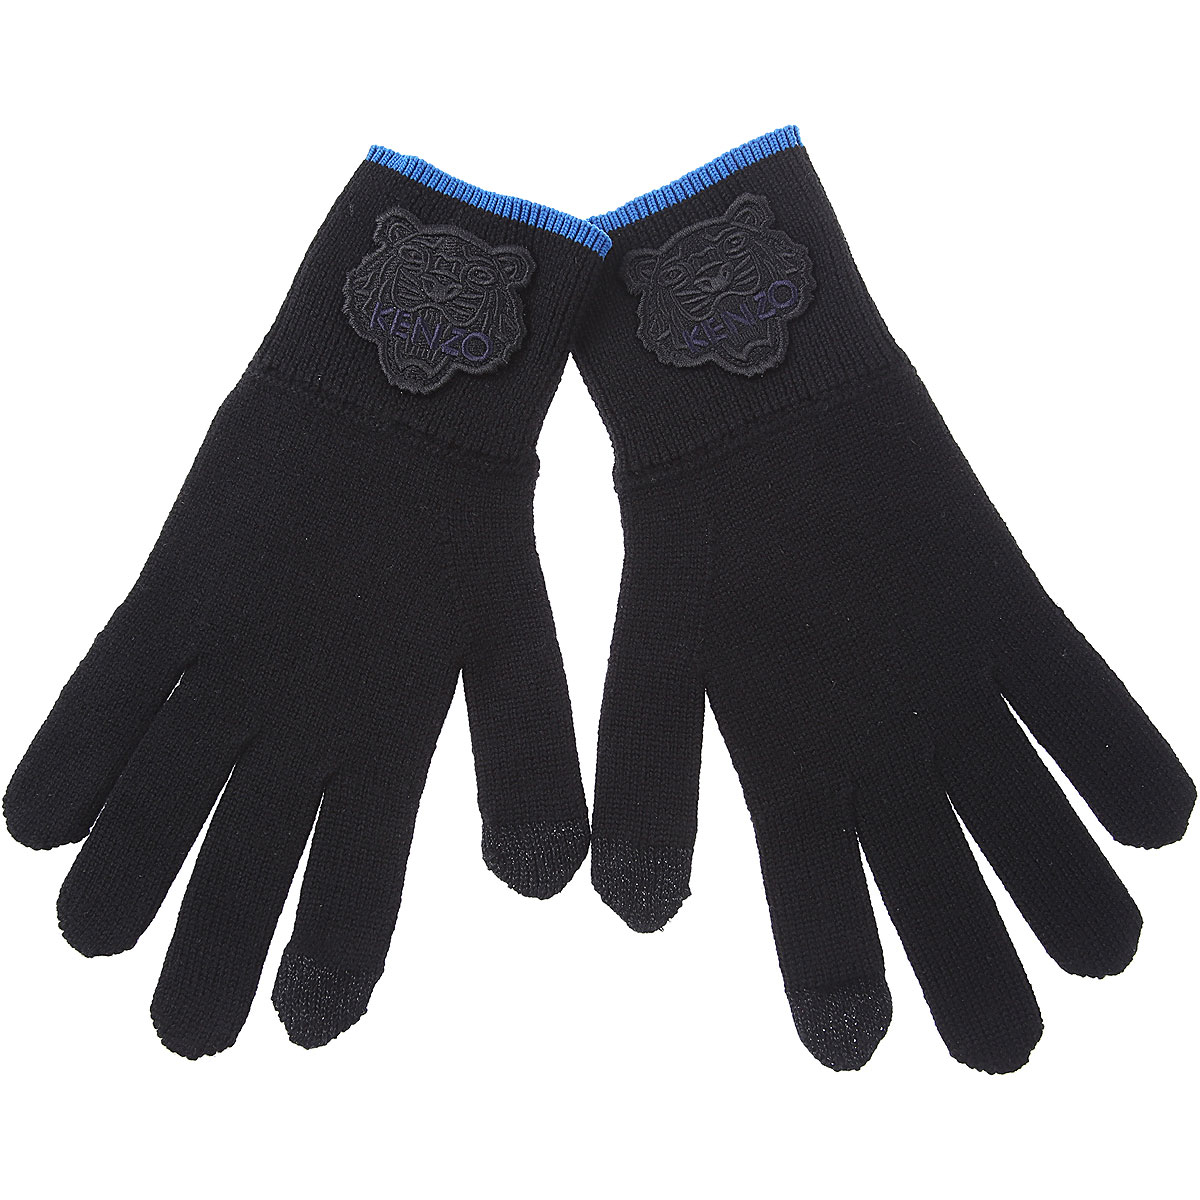 Kenzo Gloves for Men Black Canada - GOOFASH - Mens GLOVES